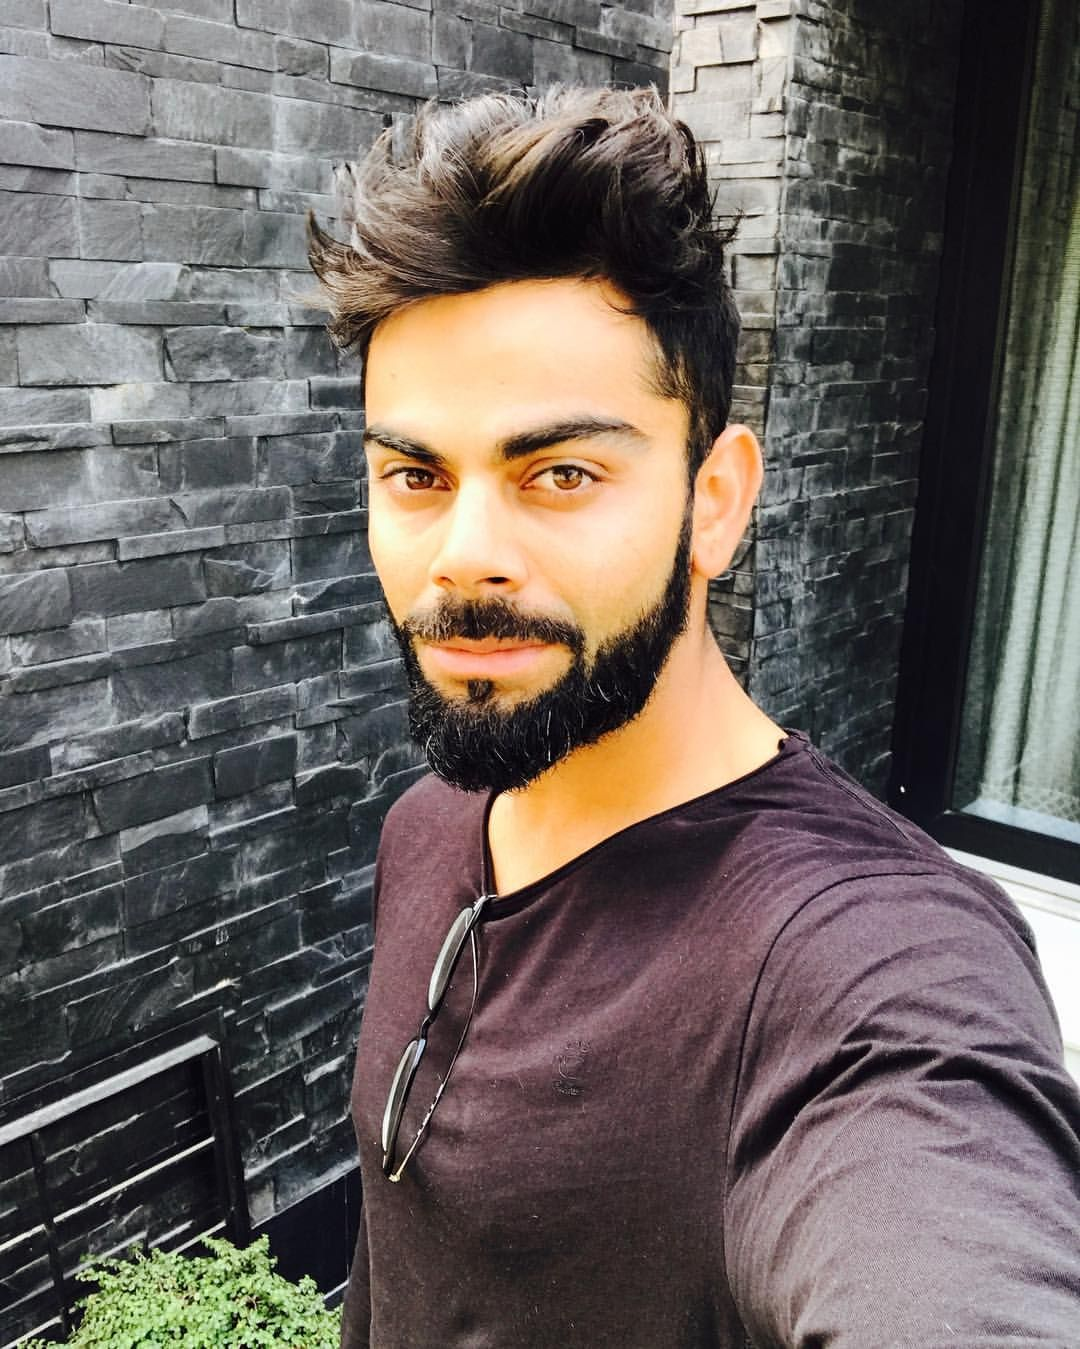 See This Instagram Photo By Virat Kohli 874 3k Likes Virat Kohli Hairstyle Virat Kohli Virat Kohli Beard